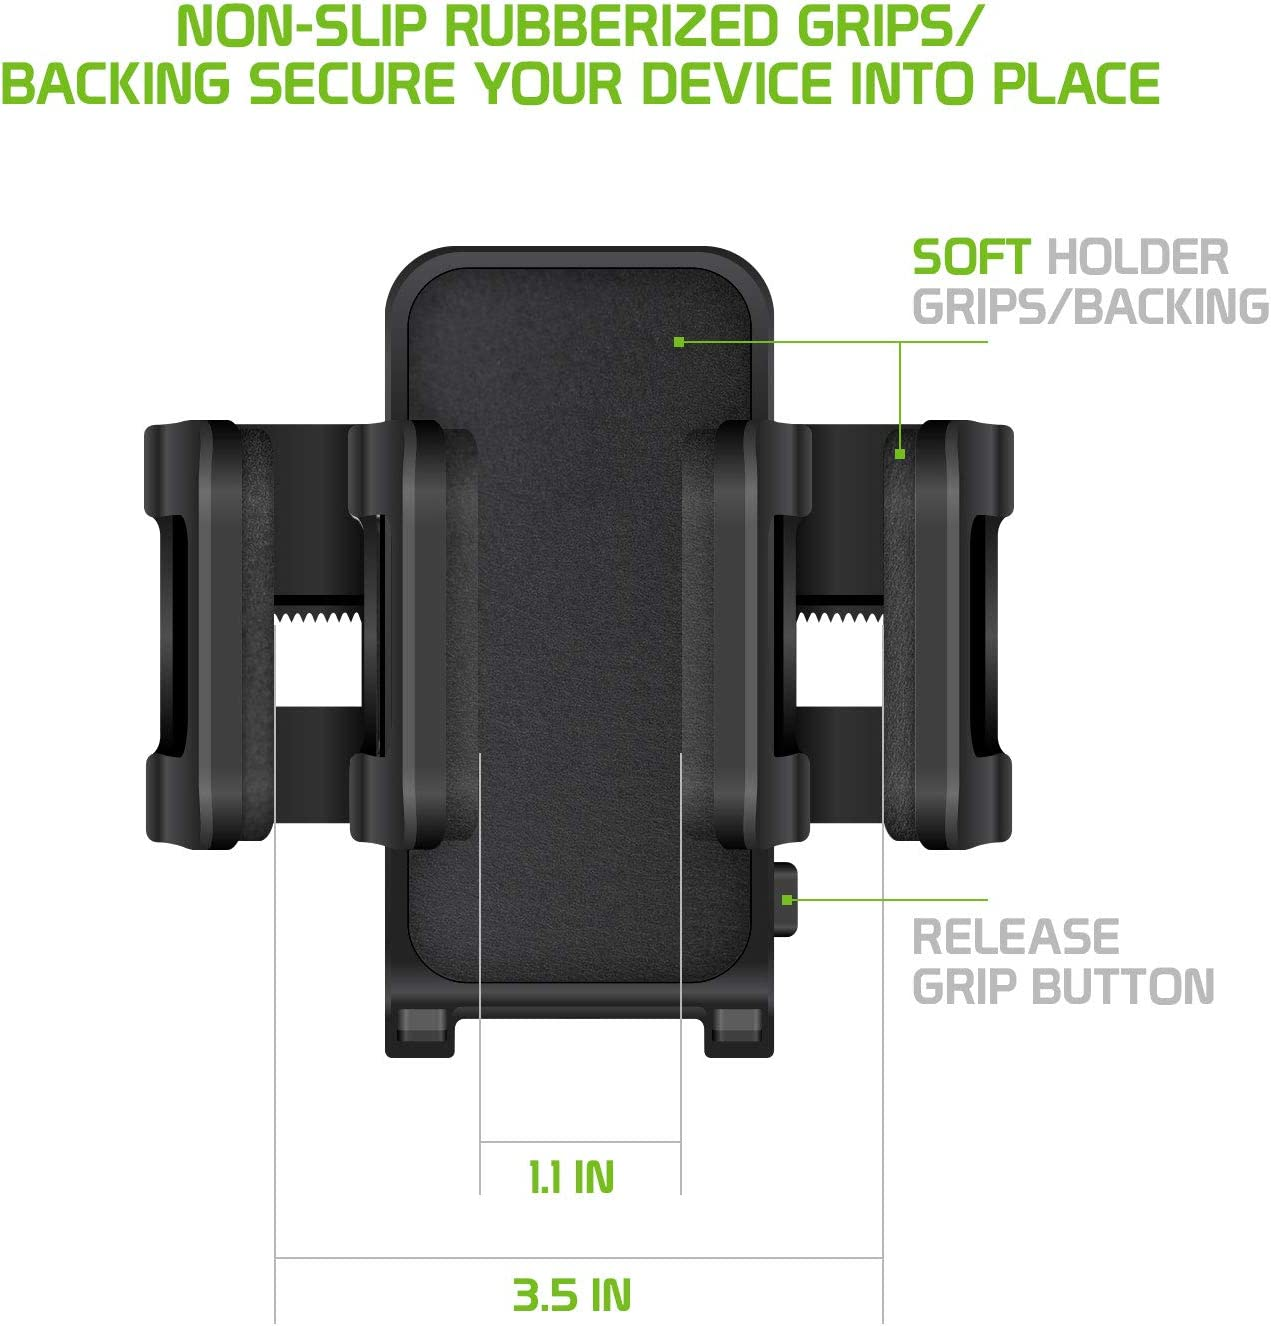 Cellet Cell Phone Motorcycle//Bicycle Handlebar Premium Holder Mount Compatible to 11 Pro Max Xr Xs Max X SE 8 7 Plus Galaxy A50 S10 S20 S20 S20 5G S9 S8 Note 10 9 10 Pixel 4 3 XL LG V50 G8 Z Flip